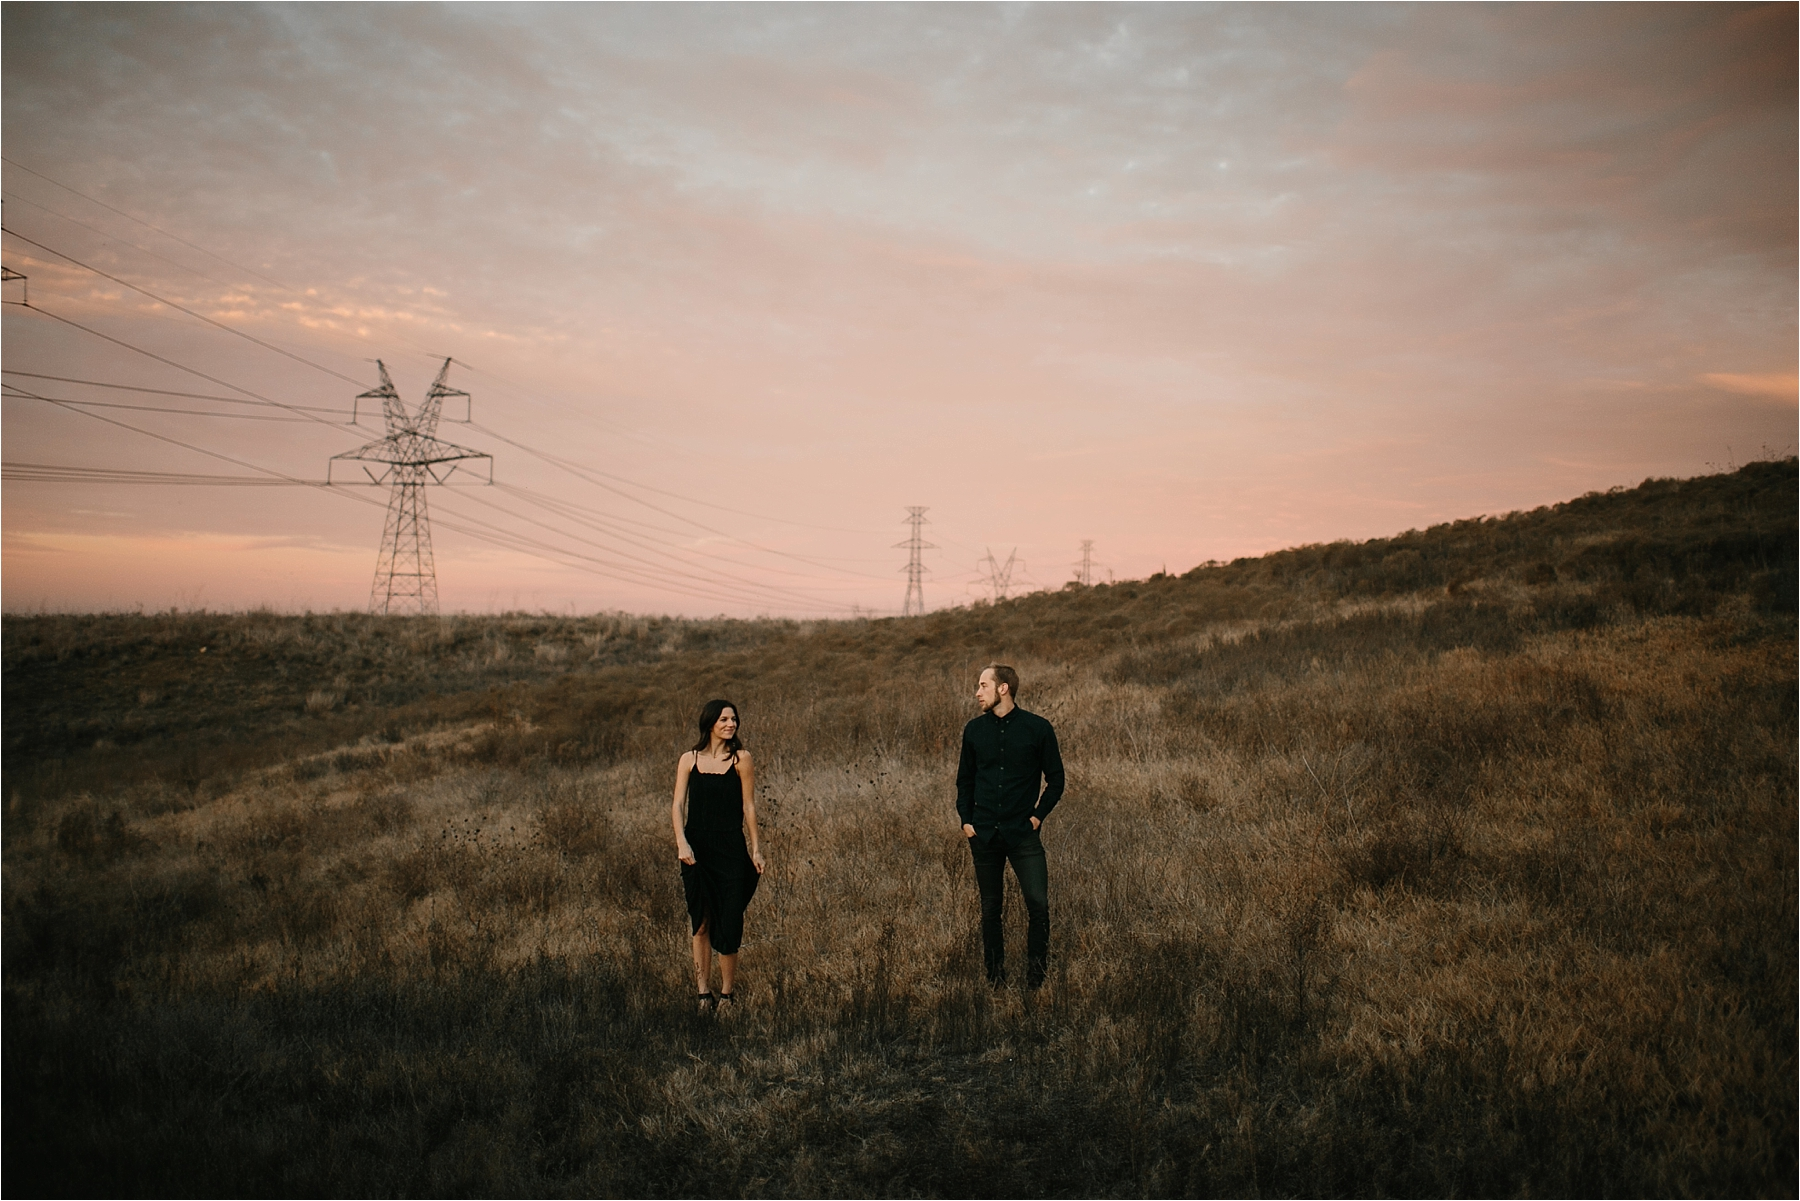 Trey + Phoebe __ a playful, intimate engagement session with dark_neutral outfit inspiration by North Texas Wedding Photographer Rachel Meagan Photography __ 60